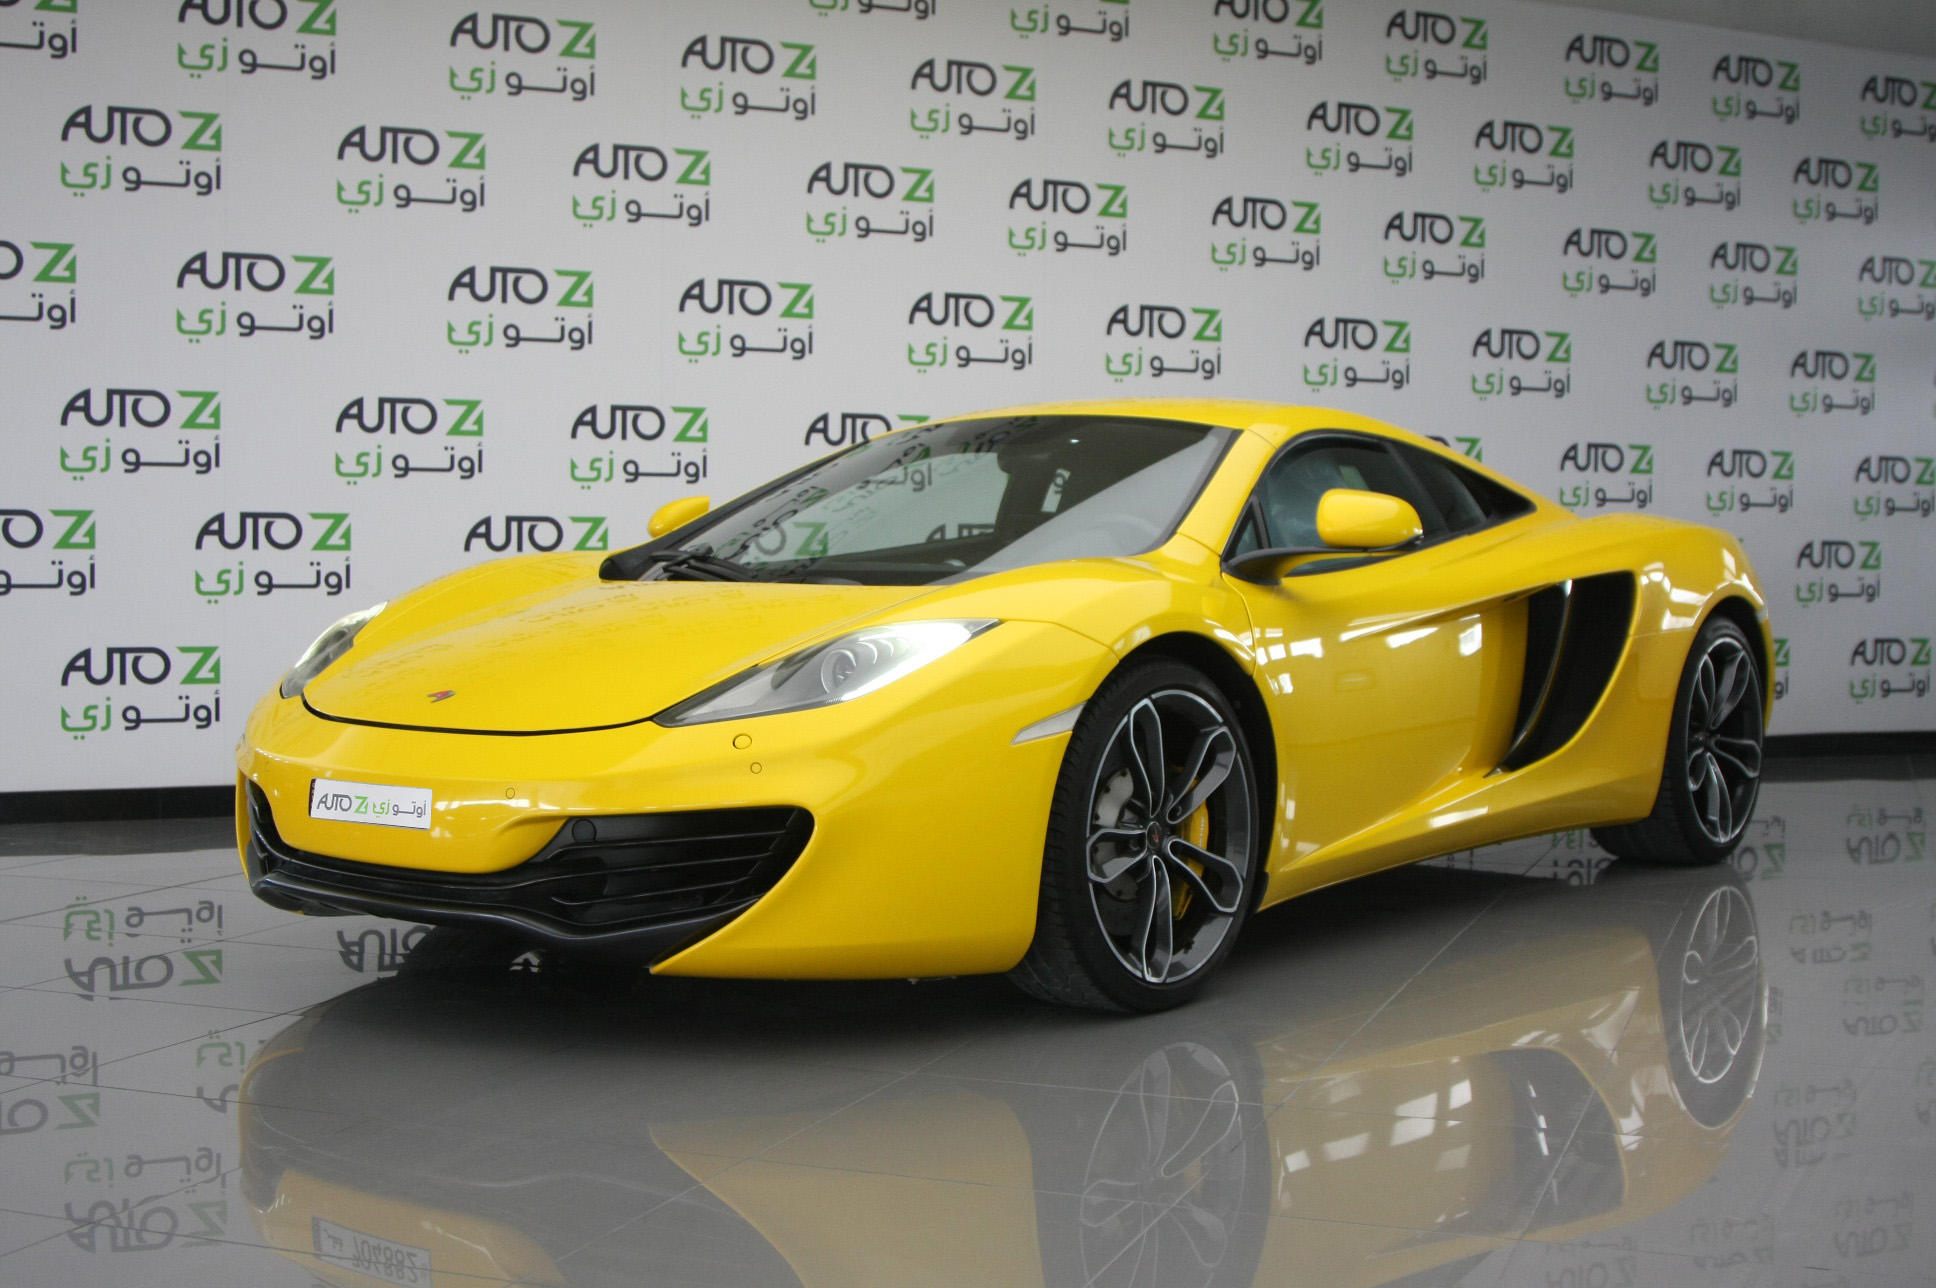 https://i2.wp.com/www.autozqa.com/wp-content/uploads/2018/09/3-Mclaren-Yellow-NO-704882-3.jpg?fit=1936%2C1288&ssl=1